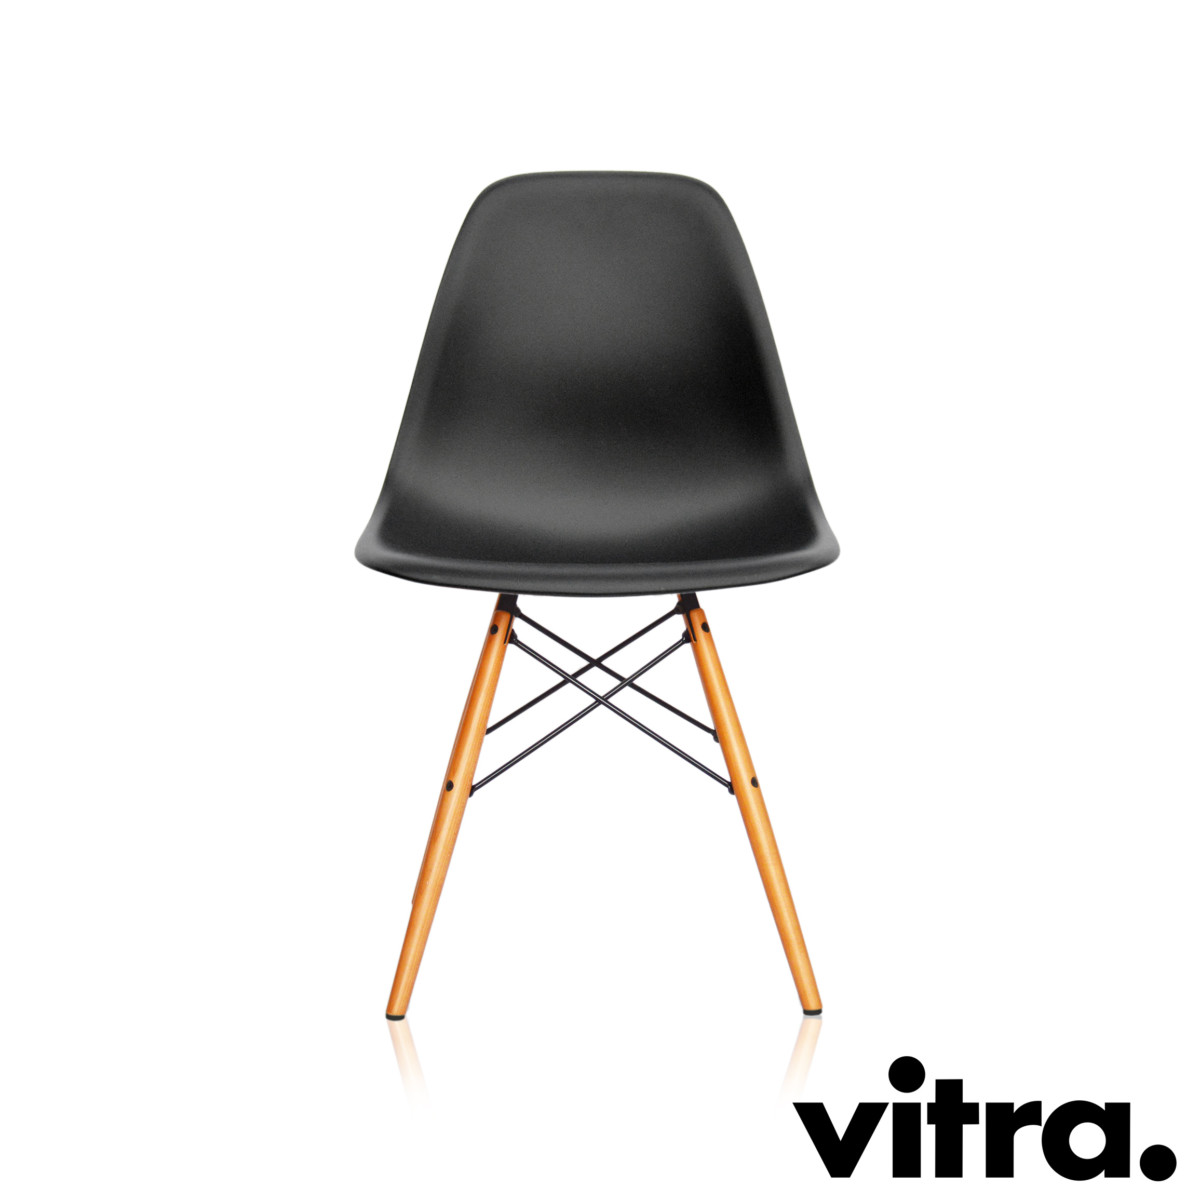 vitra eames side chair dsw schwarz ahorn g nstiger bei. Black Bedroom Furniture Sets. Home Design Ideas